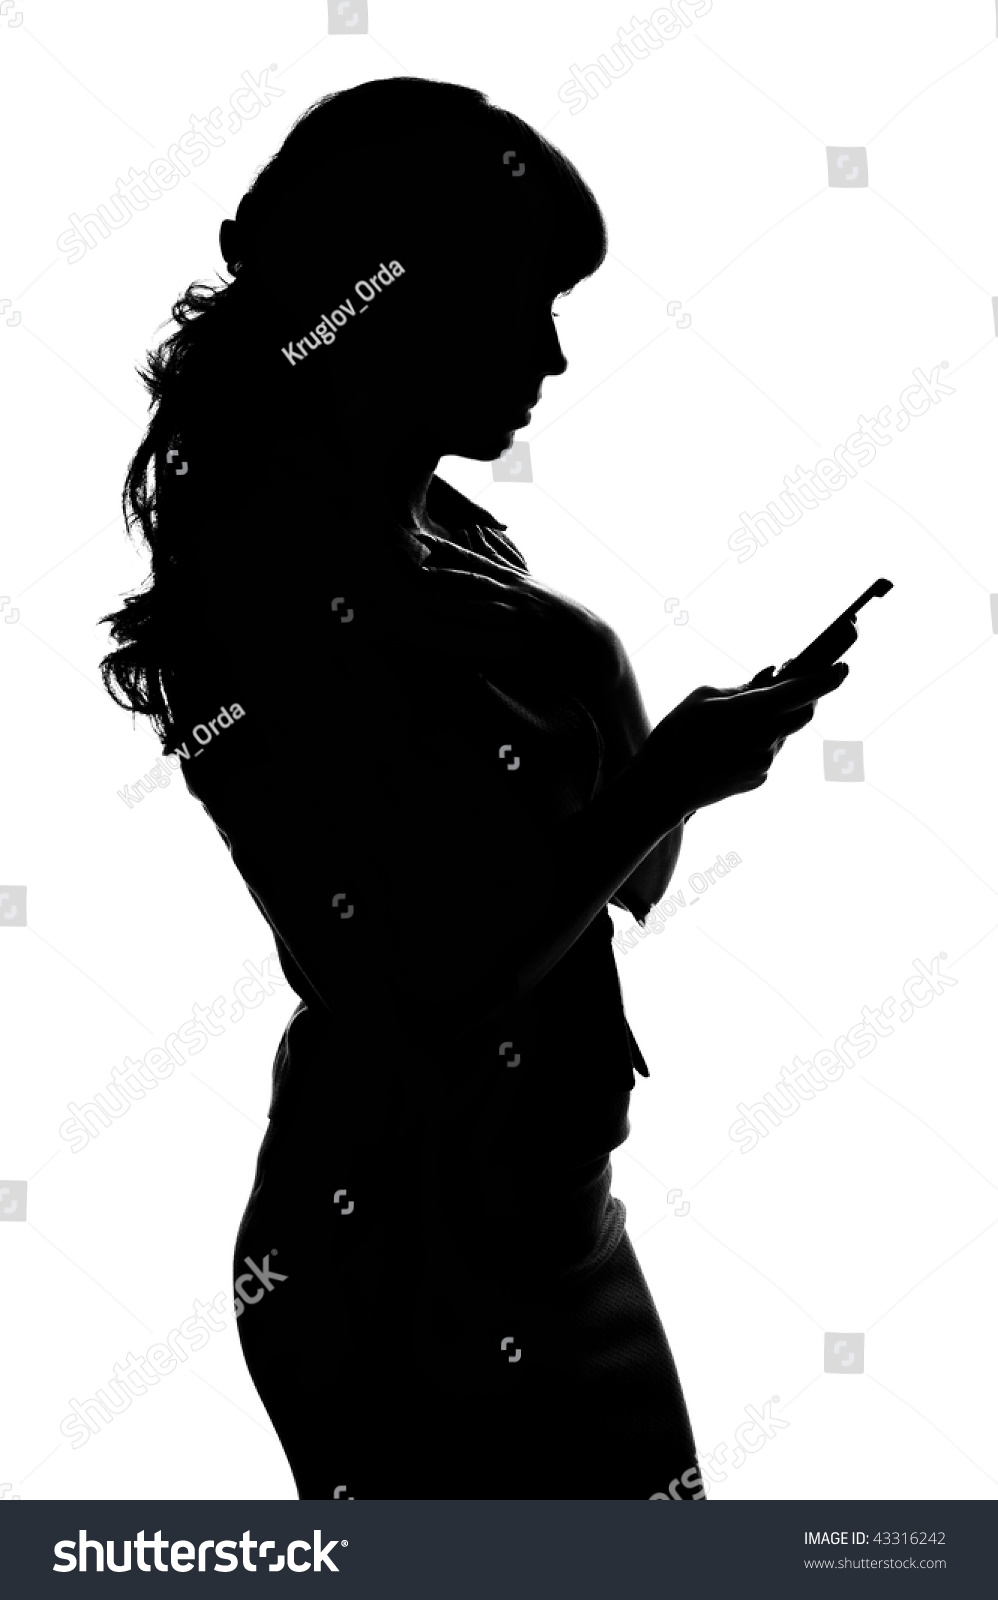 Stock Photo Silhouette Woman With Phone On White Background Using